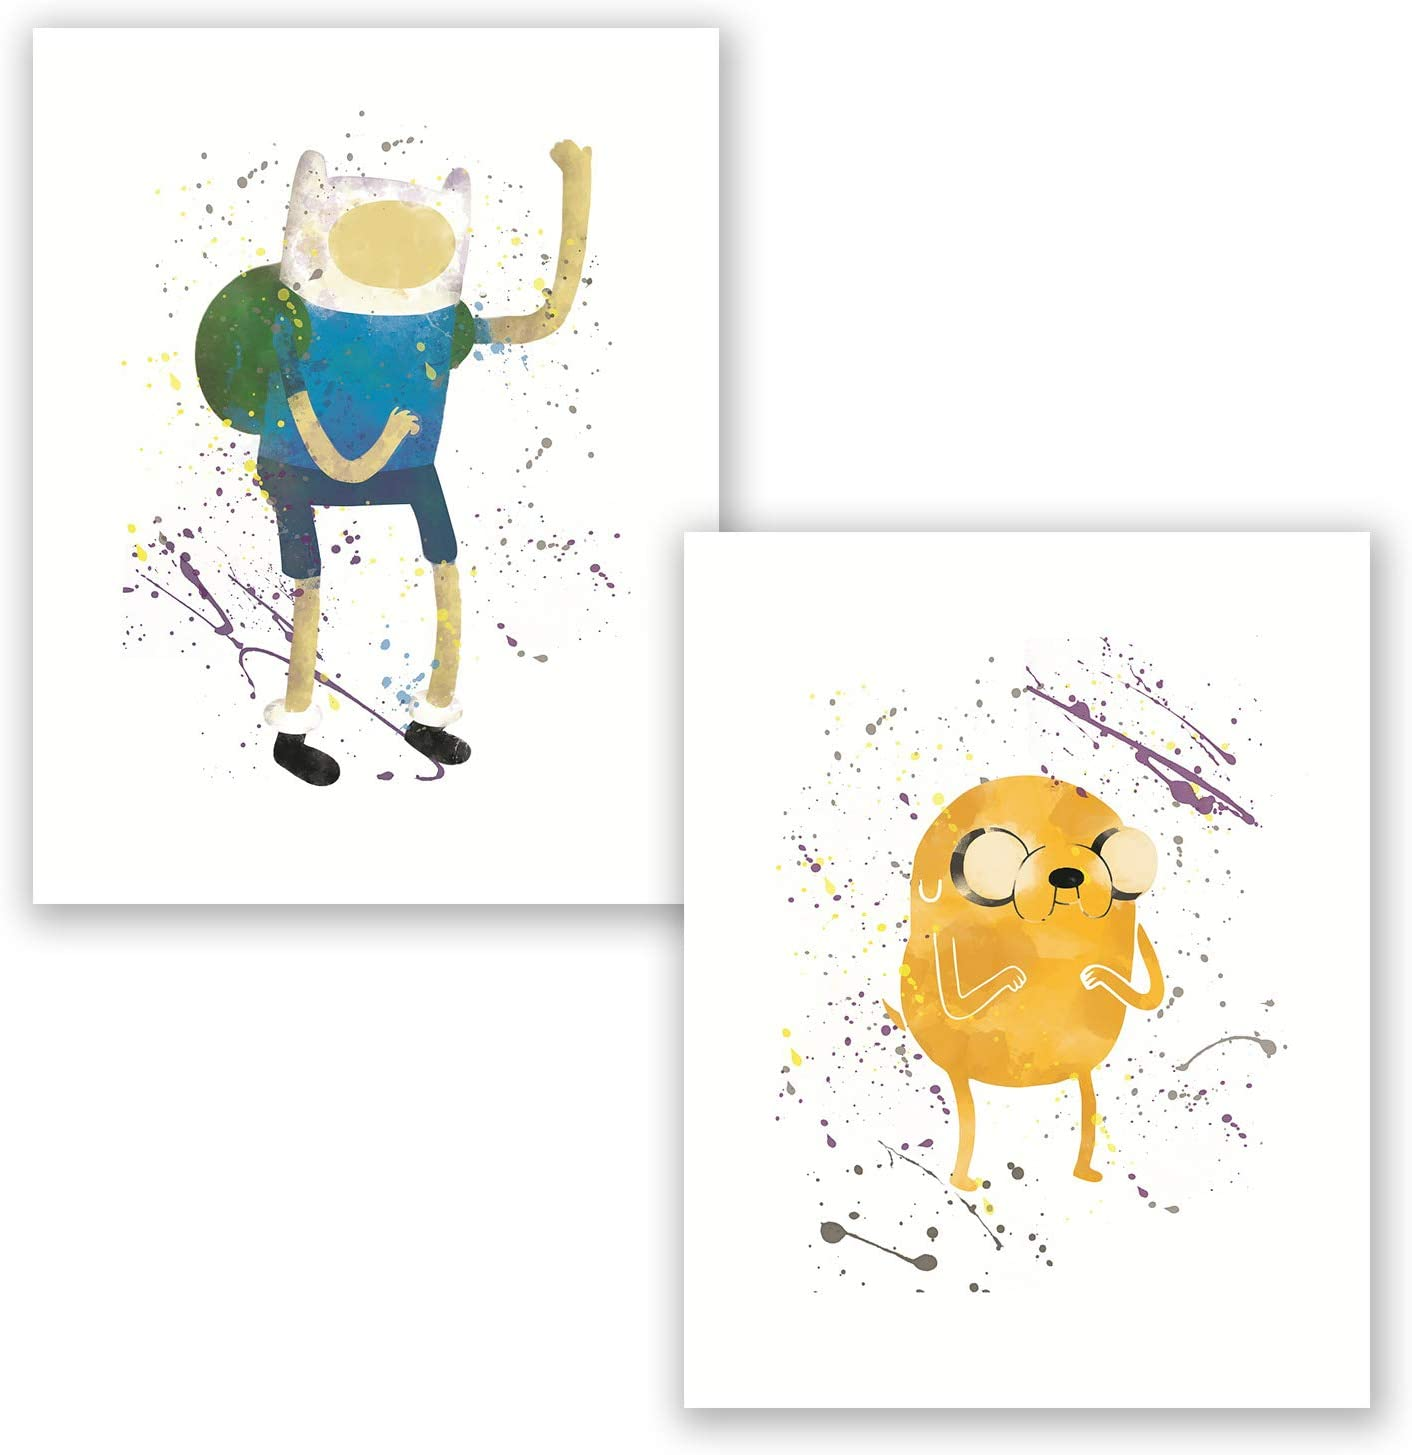 Adventure Time Poster - Set of 2 Watercolor Prints - Finn The Human - Jake The Dog - Nursery Wall Decor - Gift for Children Boys Girls (8x10)